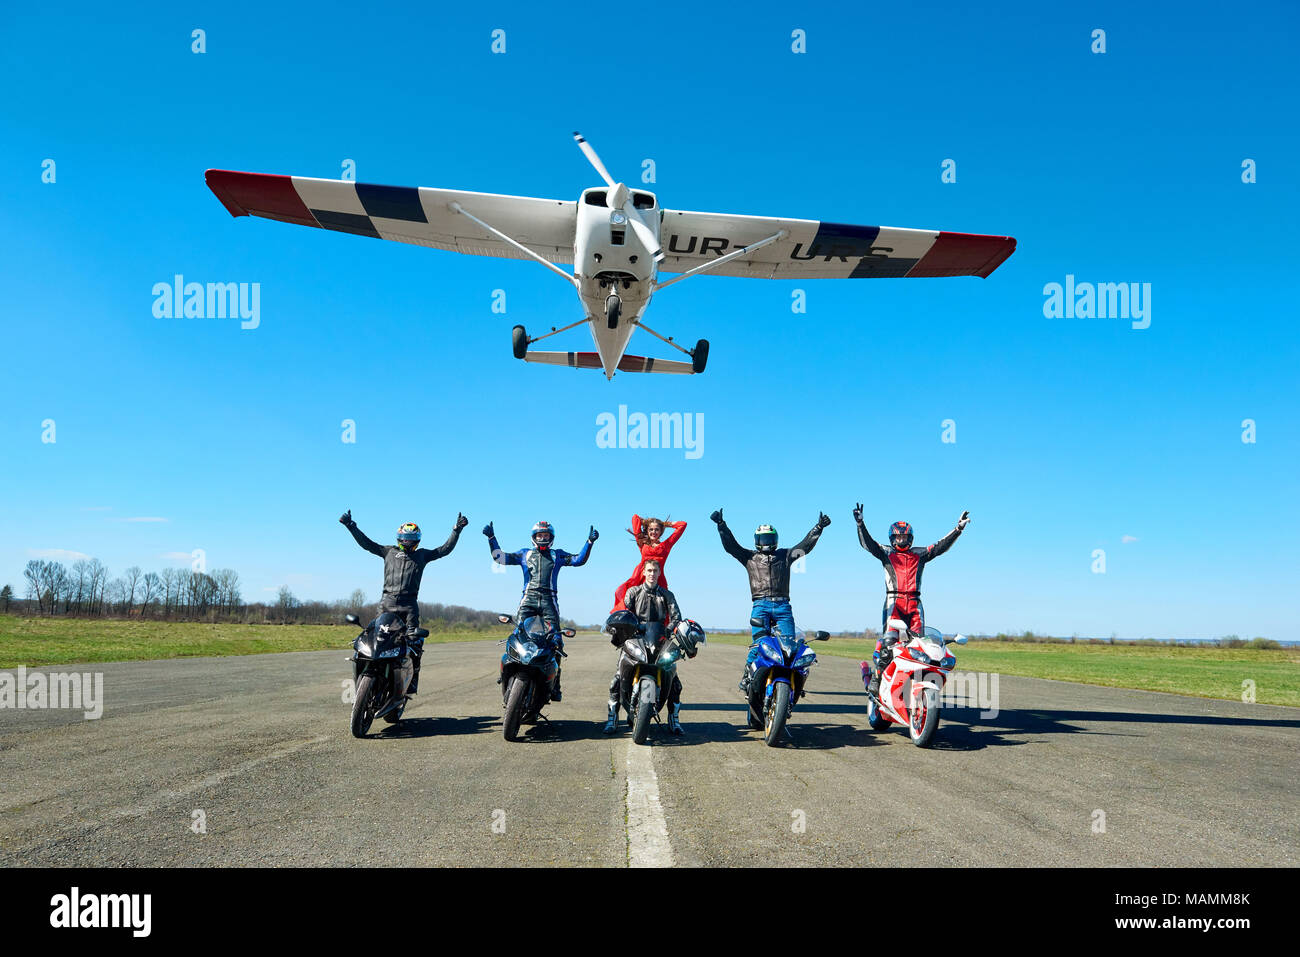 Kiev, Ukraine - 29 March 2017: White plane is flying over bikers sitting on sport motorcycles . Men keeping hands up, wearing colorful protective clothes and helmets. Feeling happy and free. - Stock Image